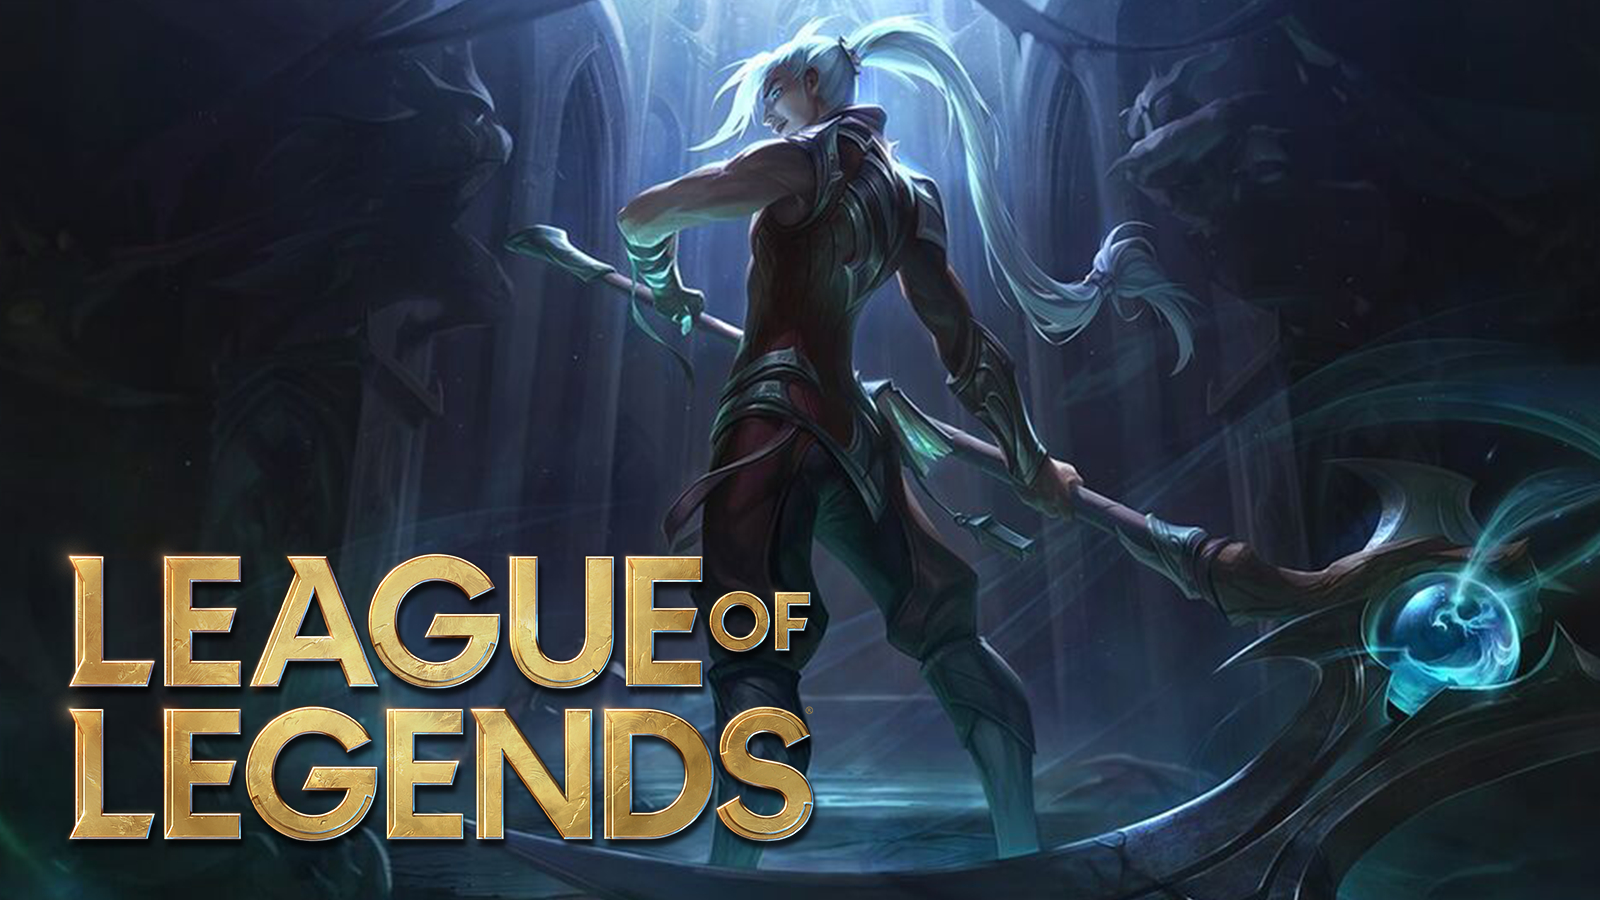 Kayn looms over League of Legends patch 10.25b.